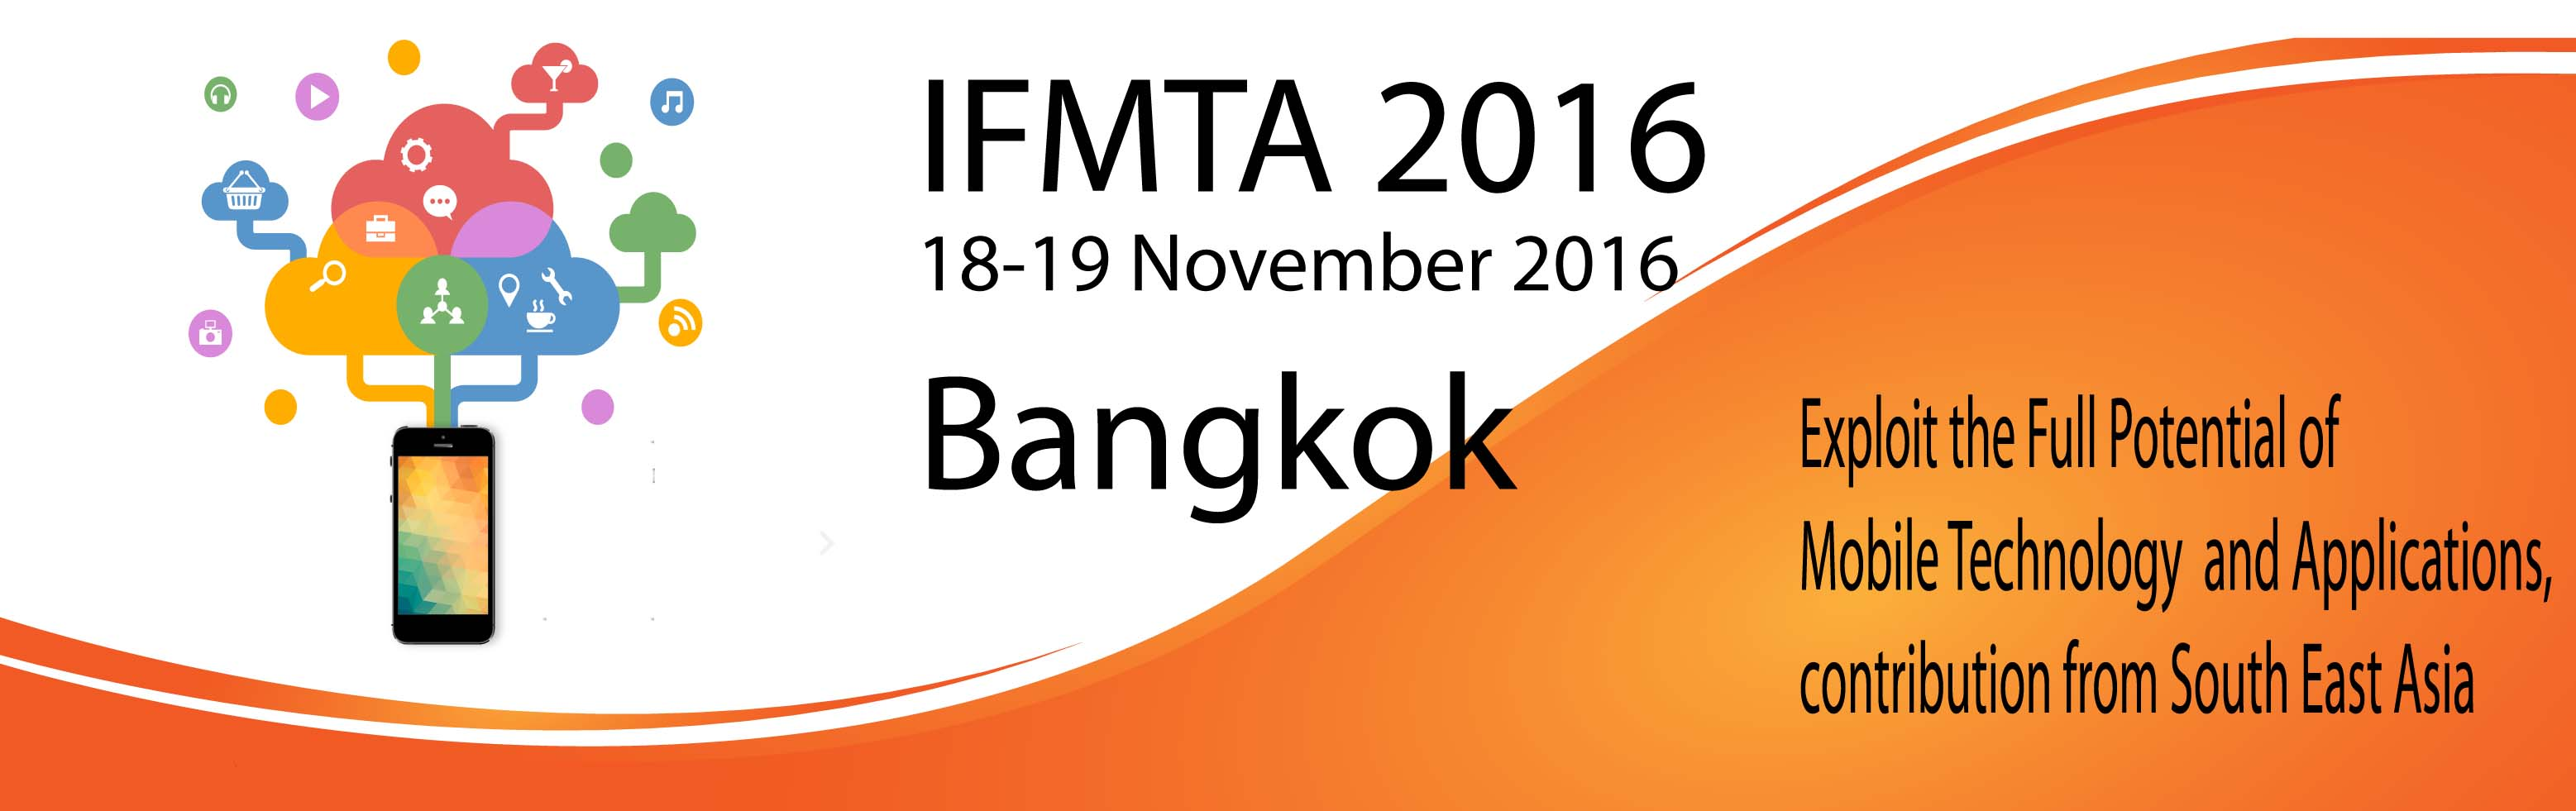 Technical Co-Sponsors for IFMTA 2016